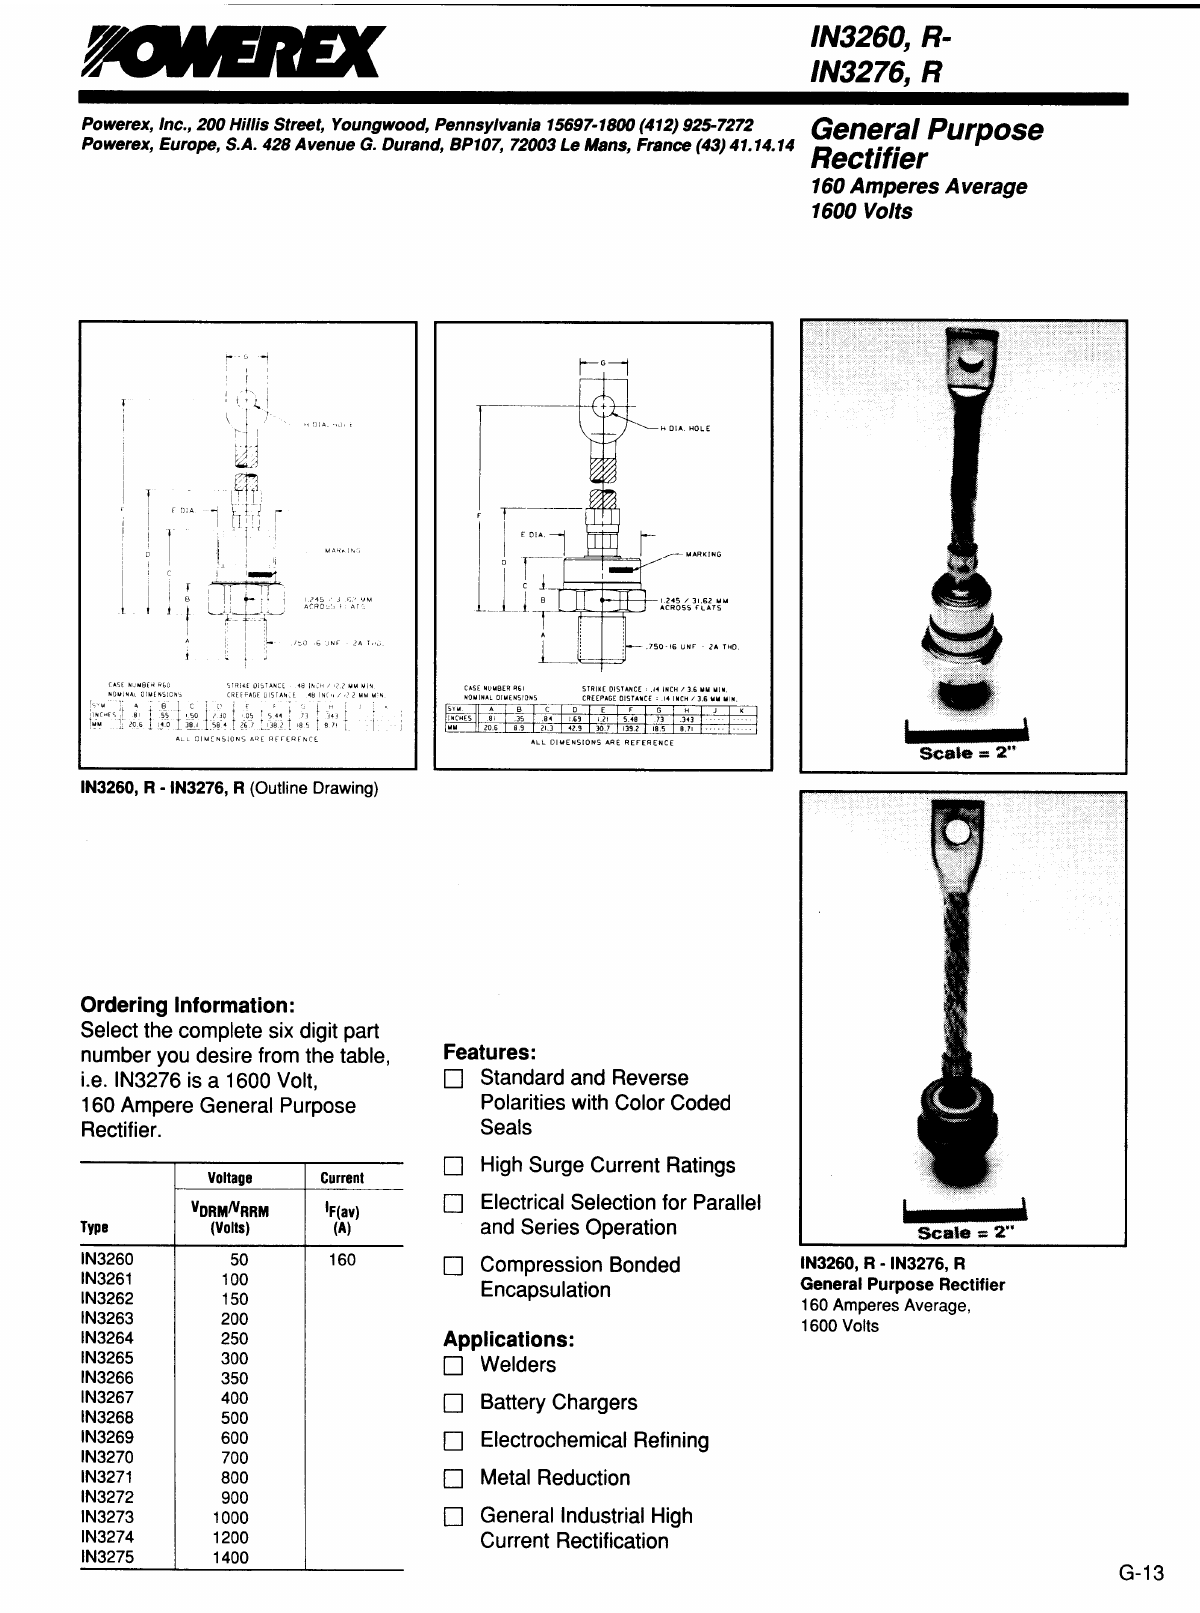 R-IN3271 datasheet